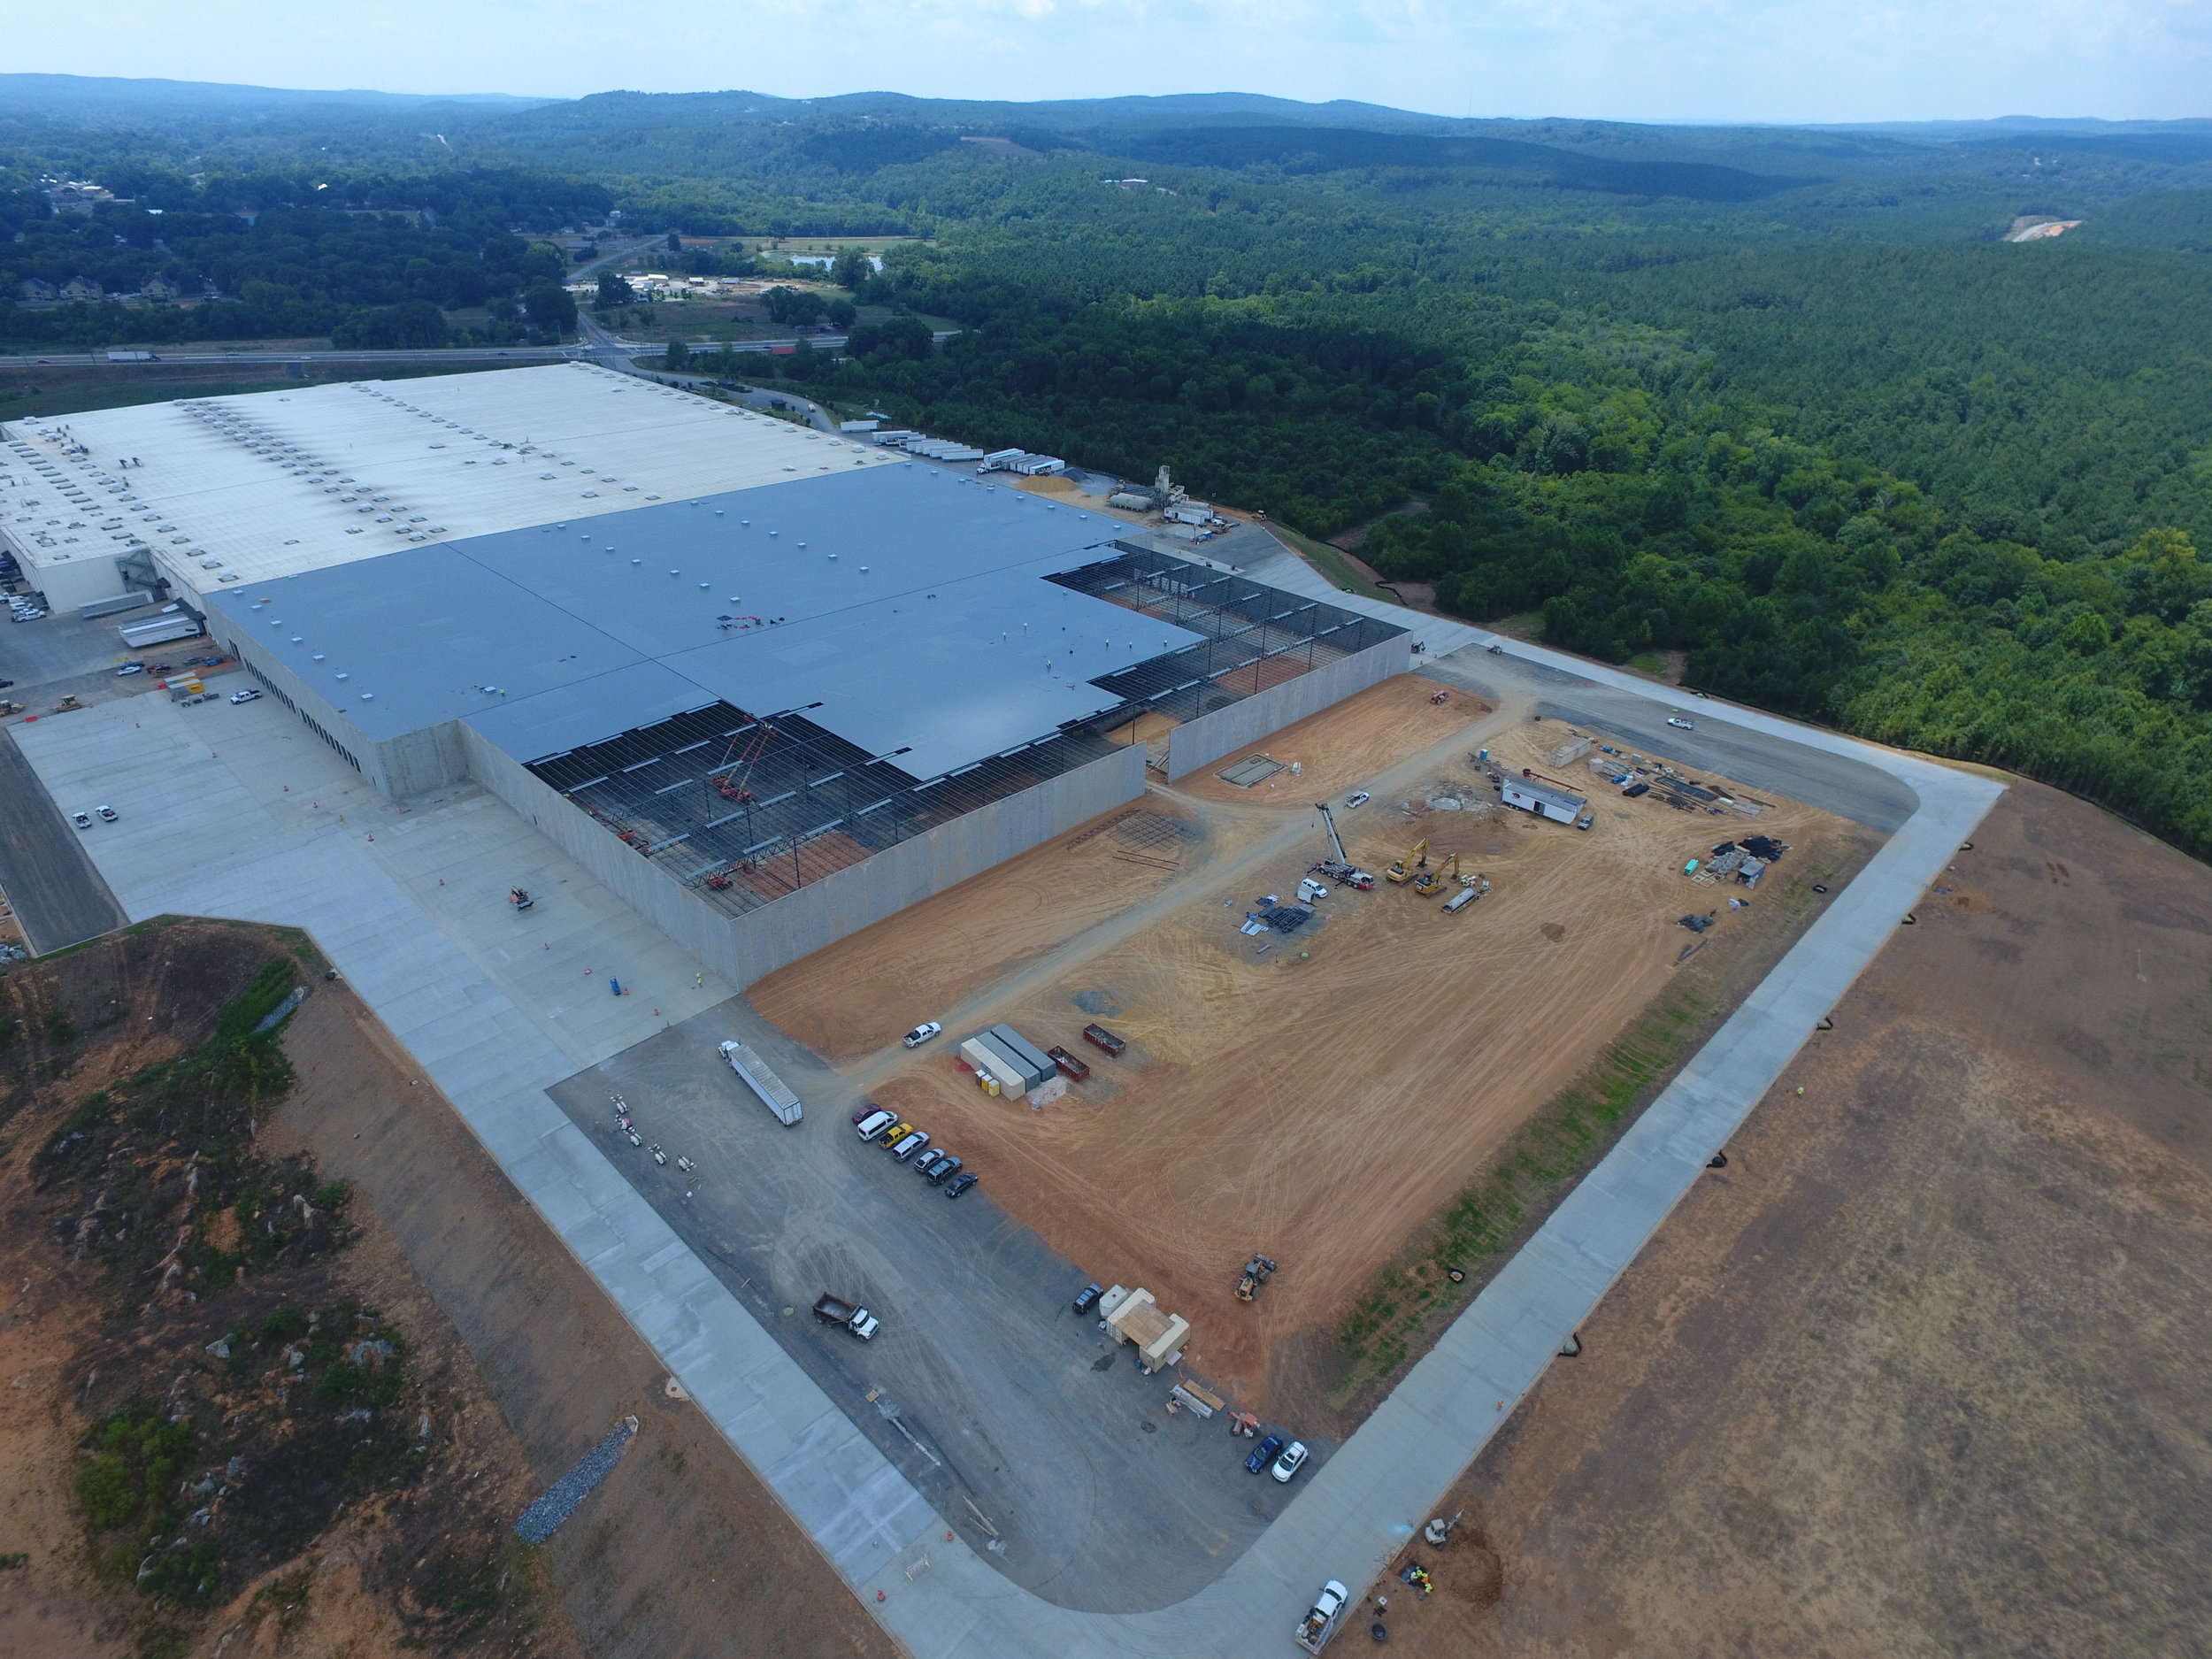 Shaw Industries - T1 Plant   We are currently underway on a 500,000 square foot expansion of the Shaw T1 Plant in Adairsville, GA.